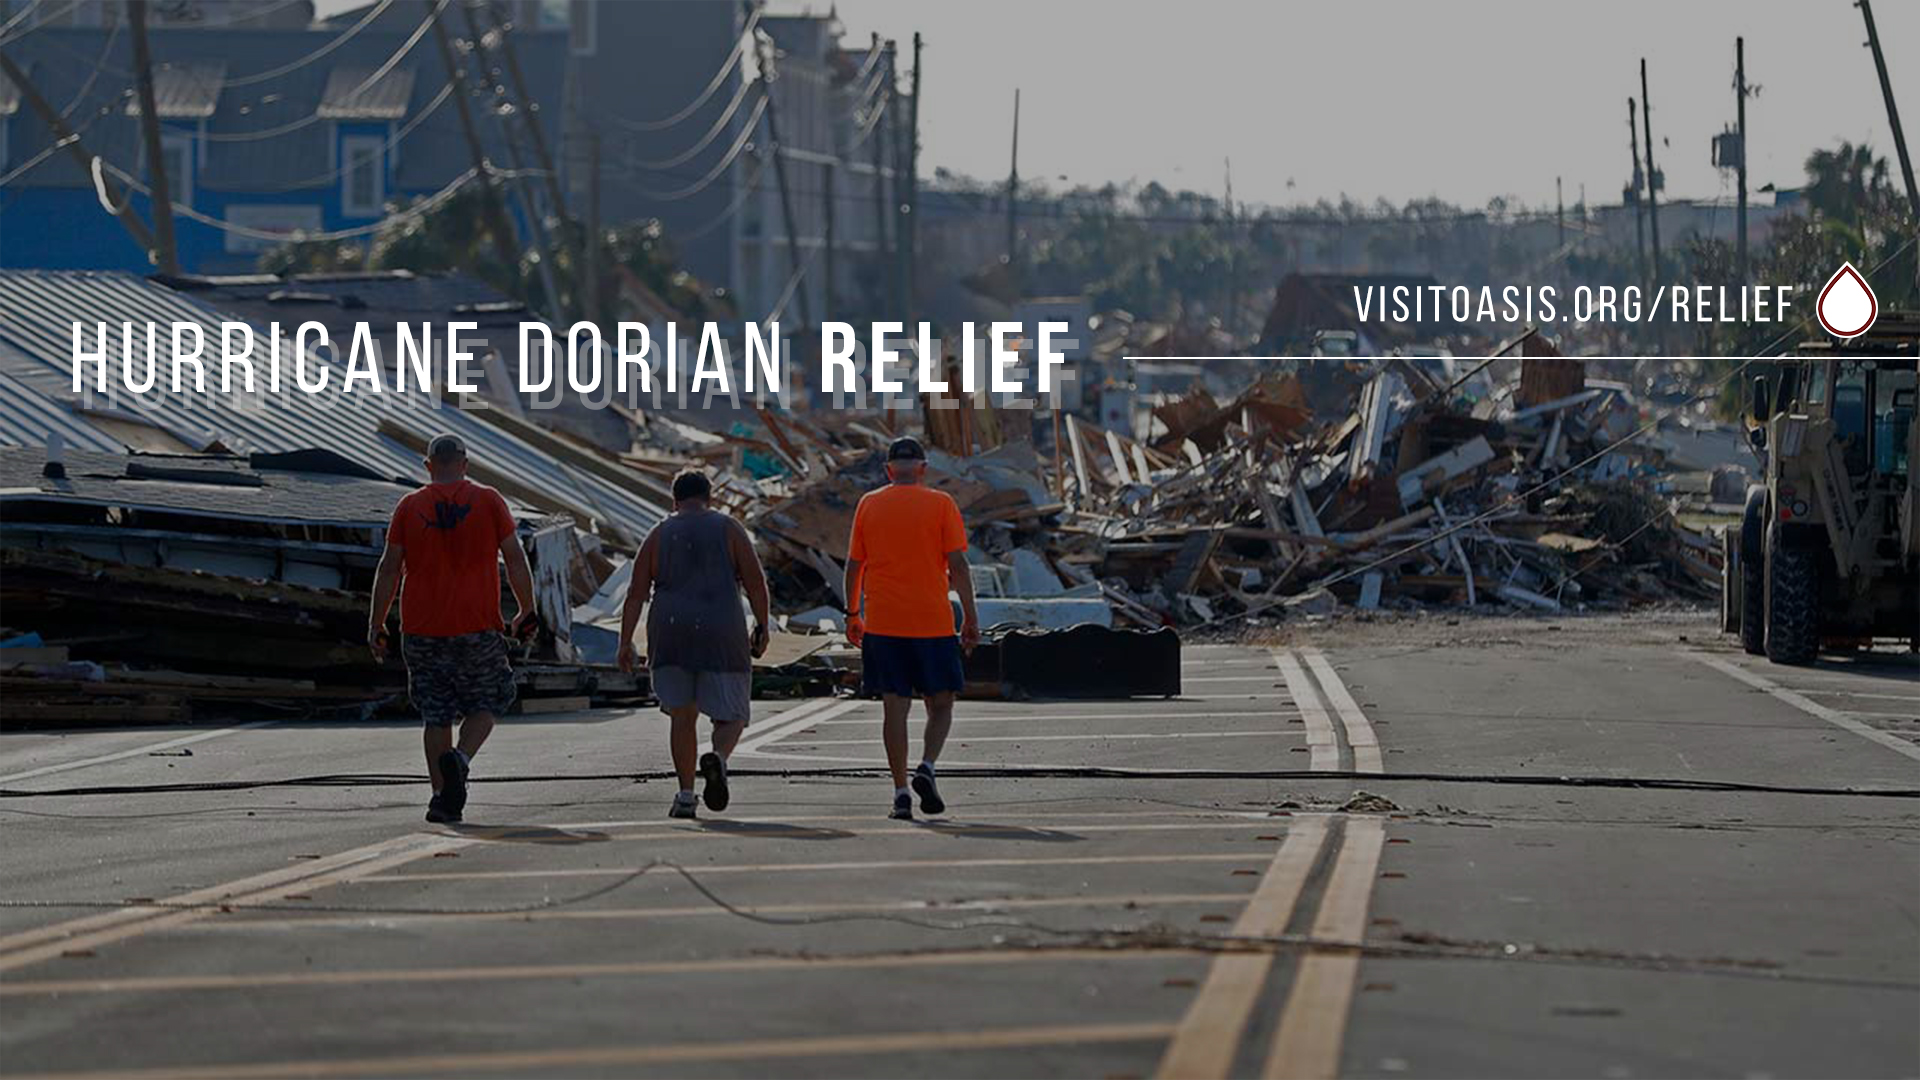 - As we continue to pray for those families devastated by hurricane dorian, we are gathering funds to send to our partners on the ground in the bahamas to begin the long journey of recovery. thank you for taking the opportunity to be the drop in this way.